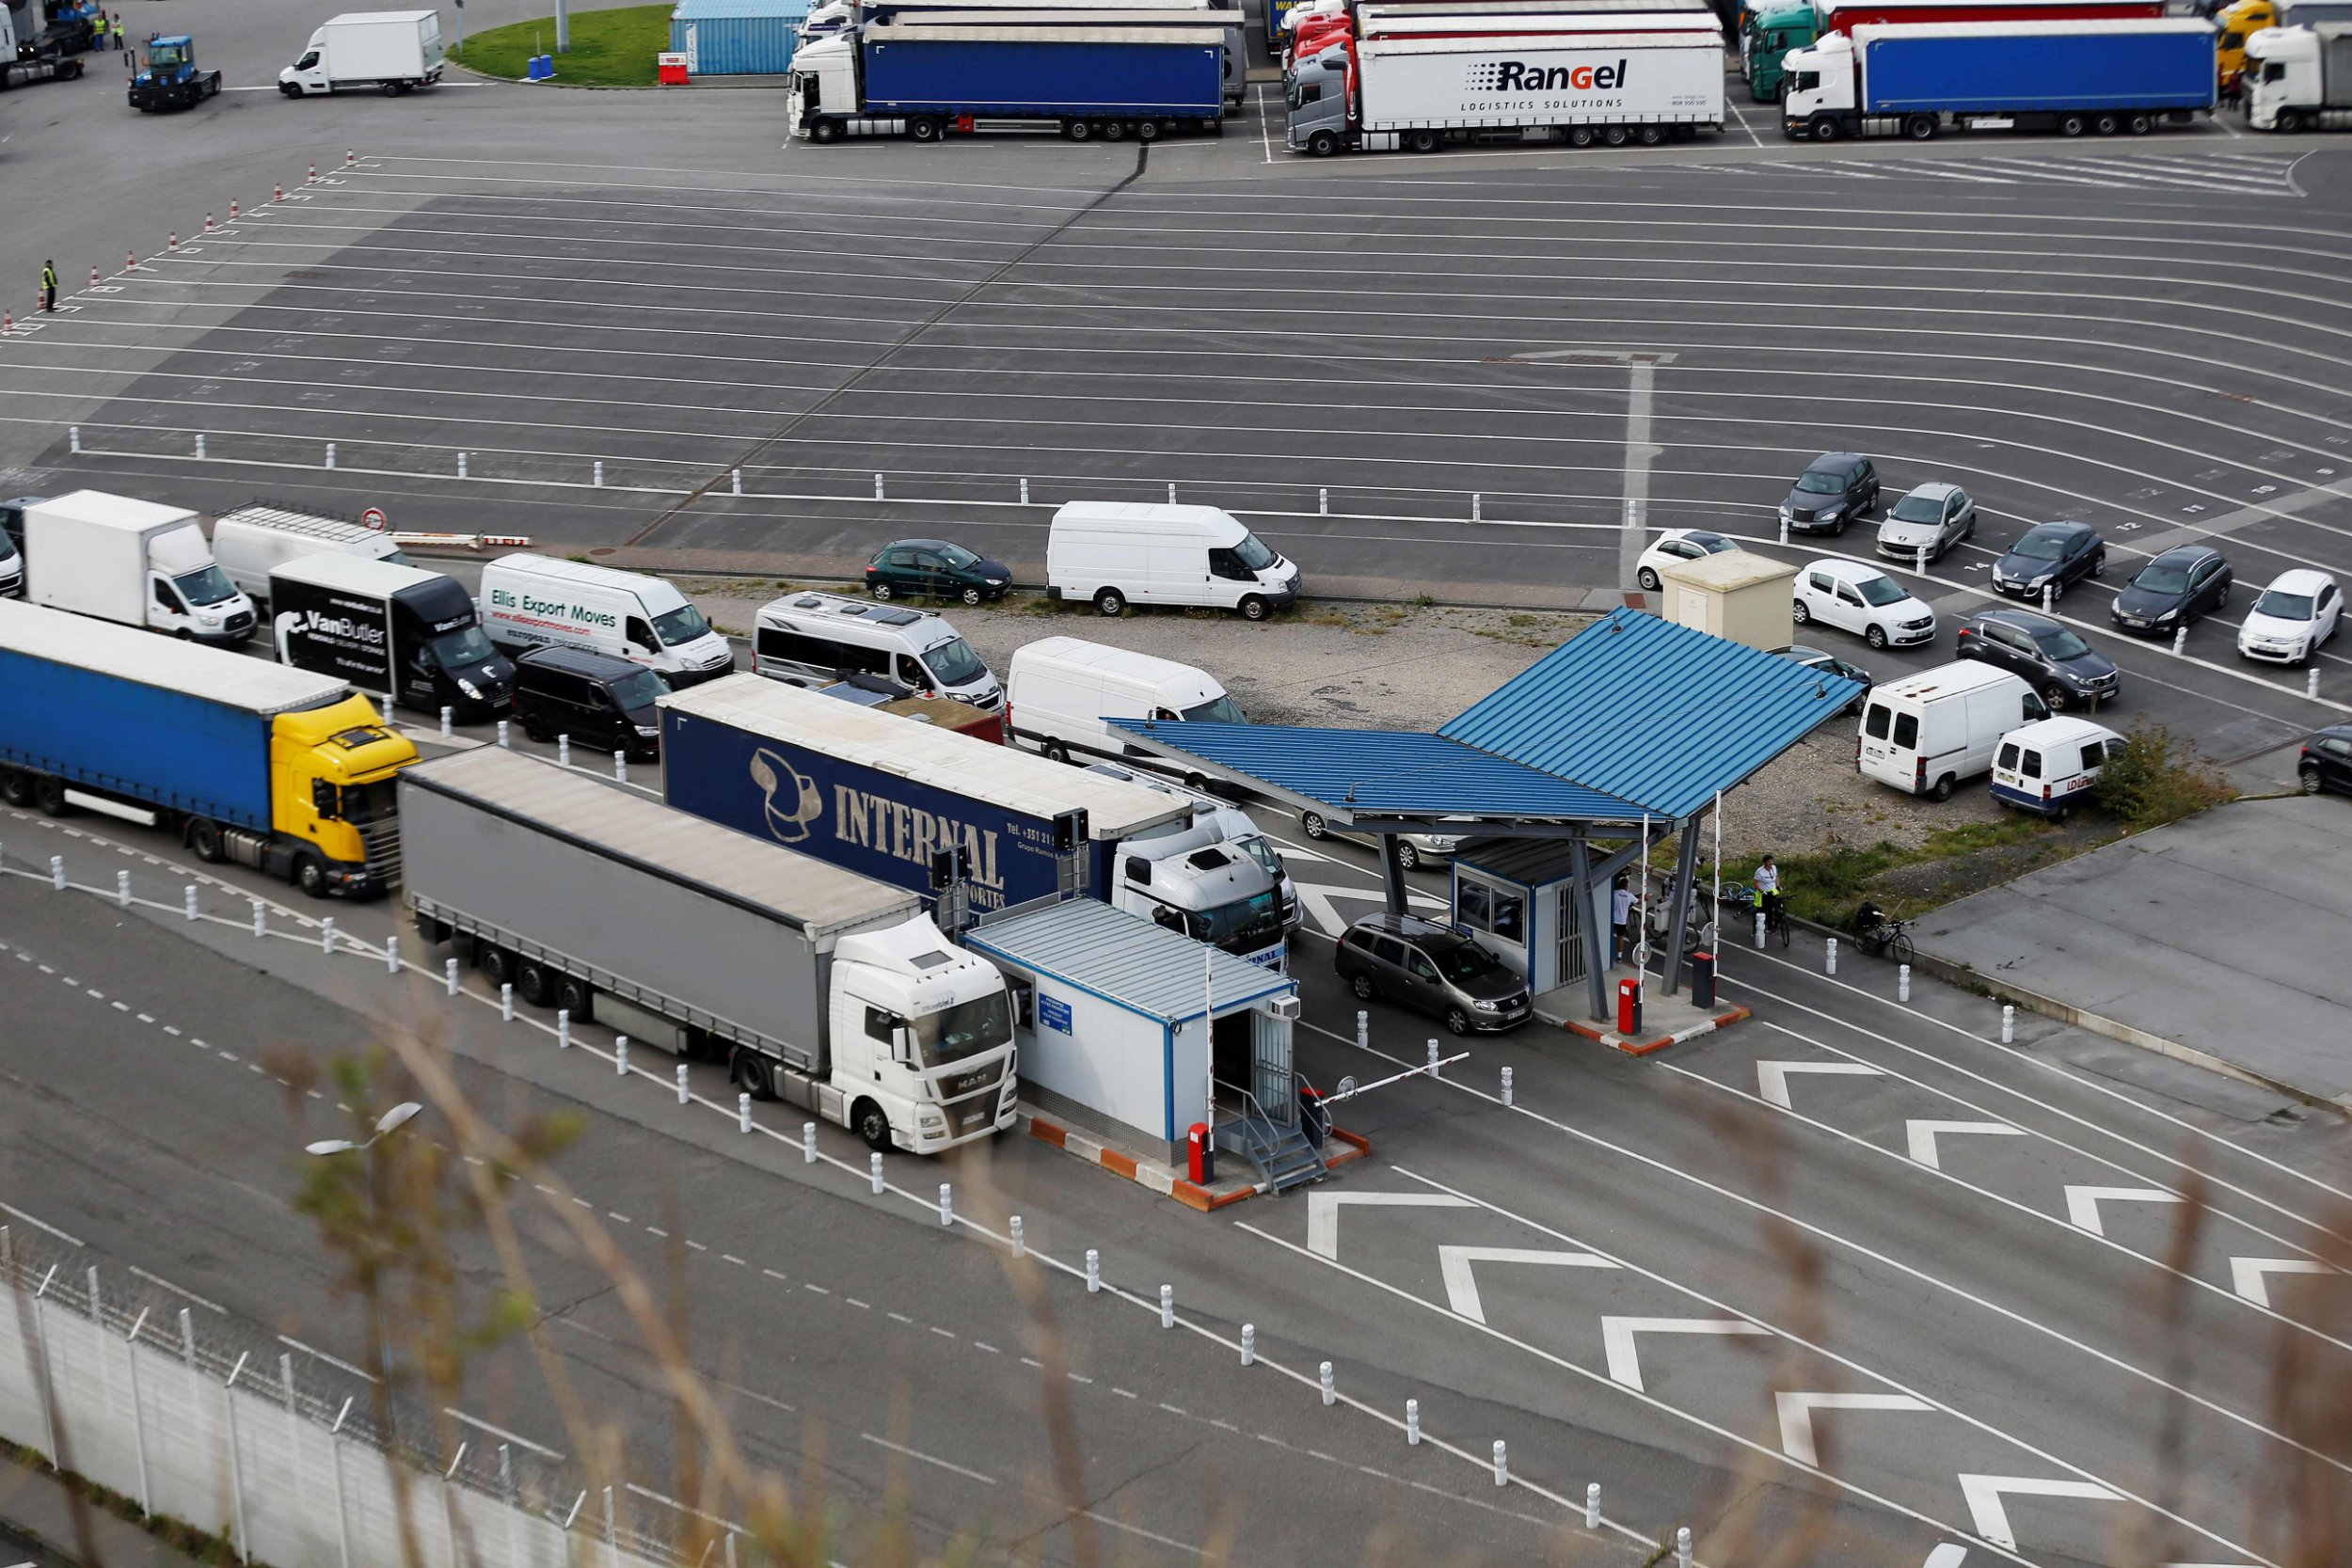 "Cars and trucks exit the DFDS Seaways Newhaven-Dieppe ferry ""Cote d'Albatre"" on October 11, 2018 in Dieppe's harbour, northwestern France. - Twice a day, three times in the summer, the ferry from Dieppe unloads up to 140 cars, 40 trucks and 600 passengers into the small fishing port of Newhaven; a historic link between England and France that is a way of life for some residents of the small English fishing port. Some residents are concerned that potential customs controls that might be introduced after Britain leaves the European Union could slow down traffic and hit small seaside towns like Newhaven and Dieppe disproportionately hard. (Photo by CHARLY TRIBALLEAU / AFP)CHARLY TRIBALLEAU/AFP/Getty Images"